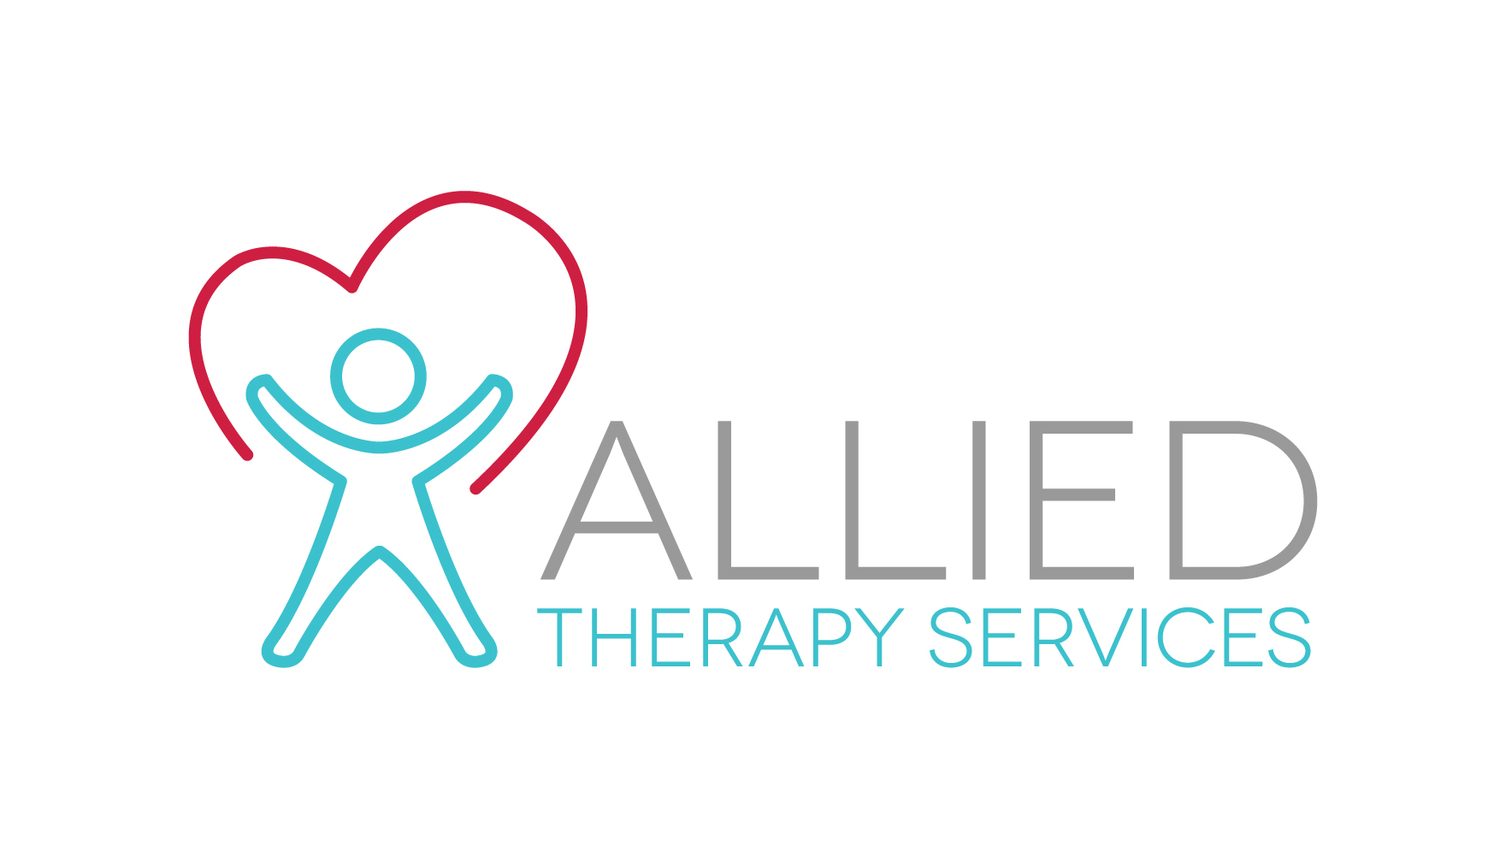 Allied Therapy Services    |    Geelong, Ballarat, Warrnambool, West Melbourne & surrounds